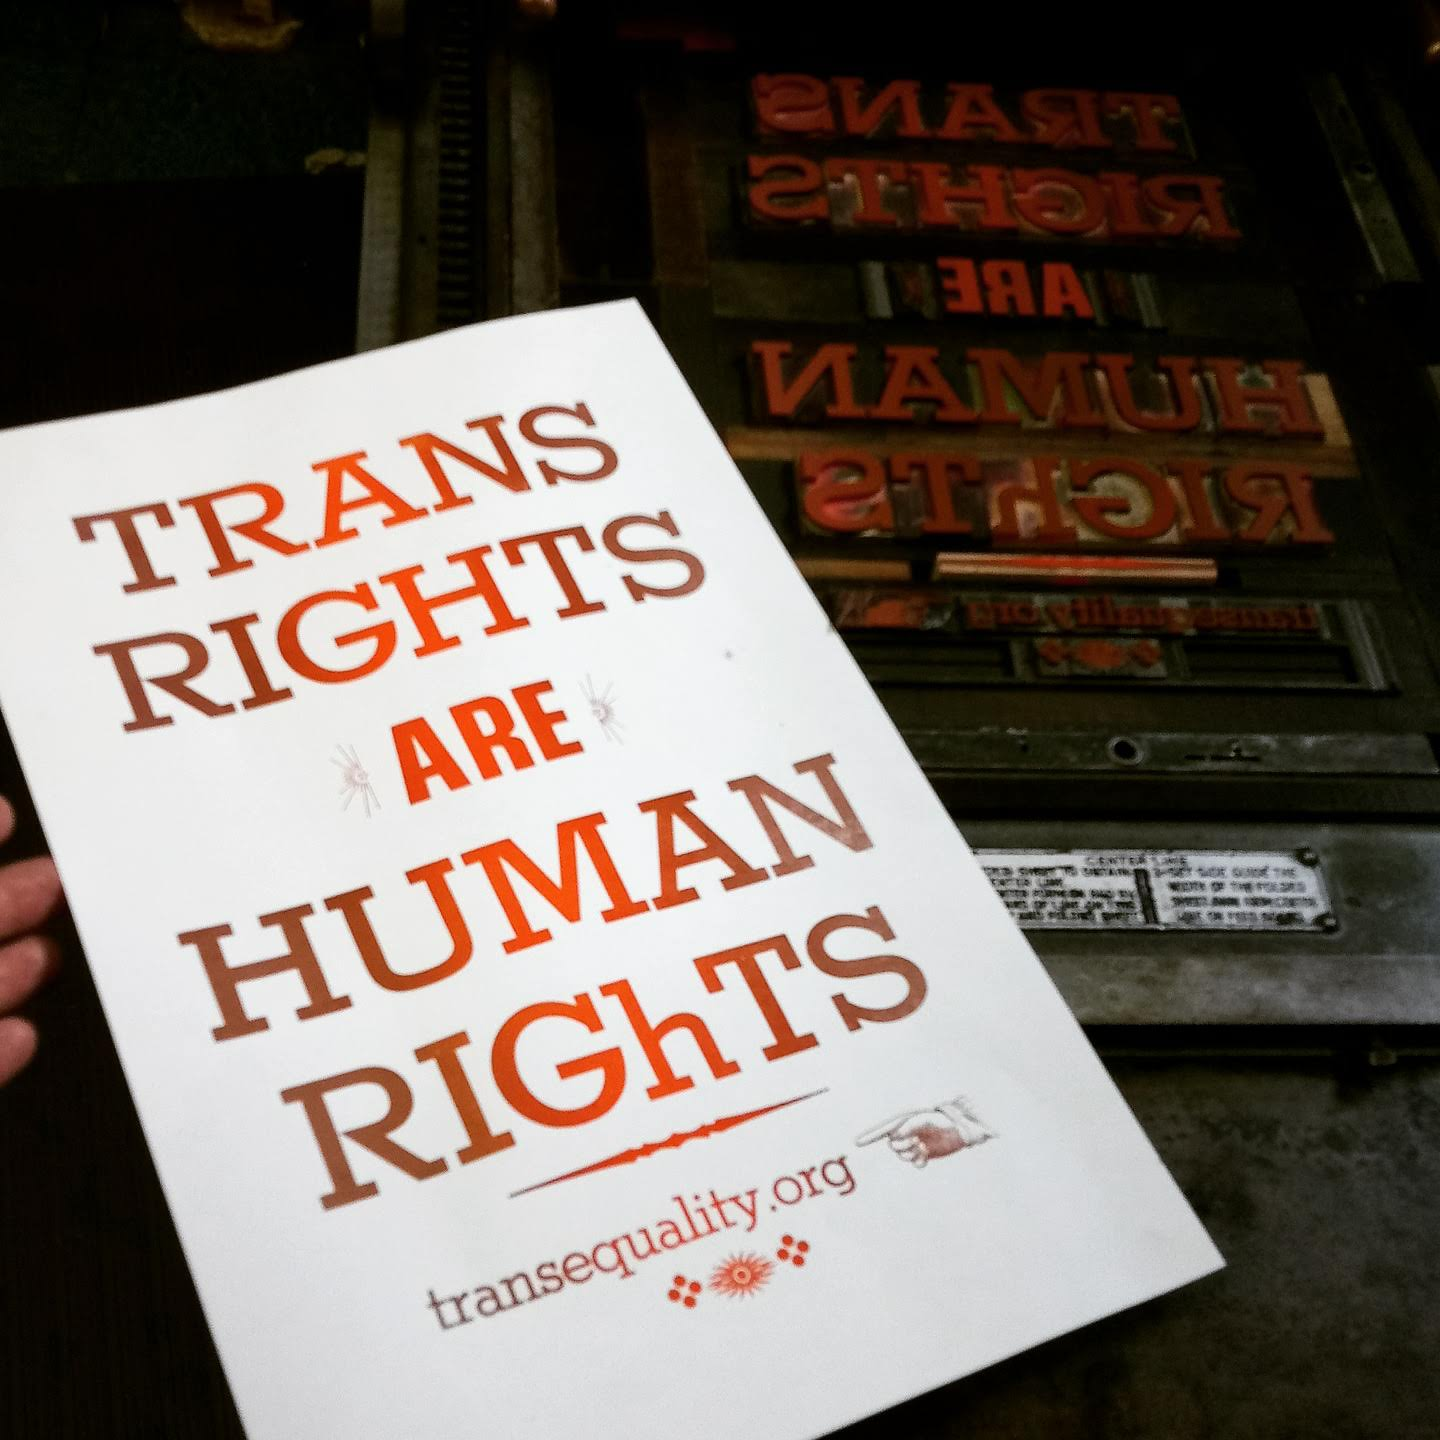 Trans Rights are Human Rights   letterpress